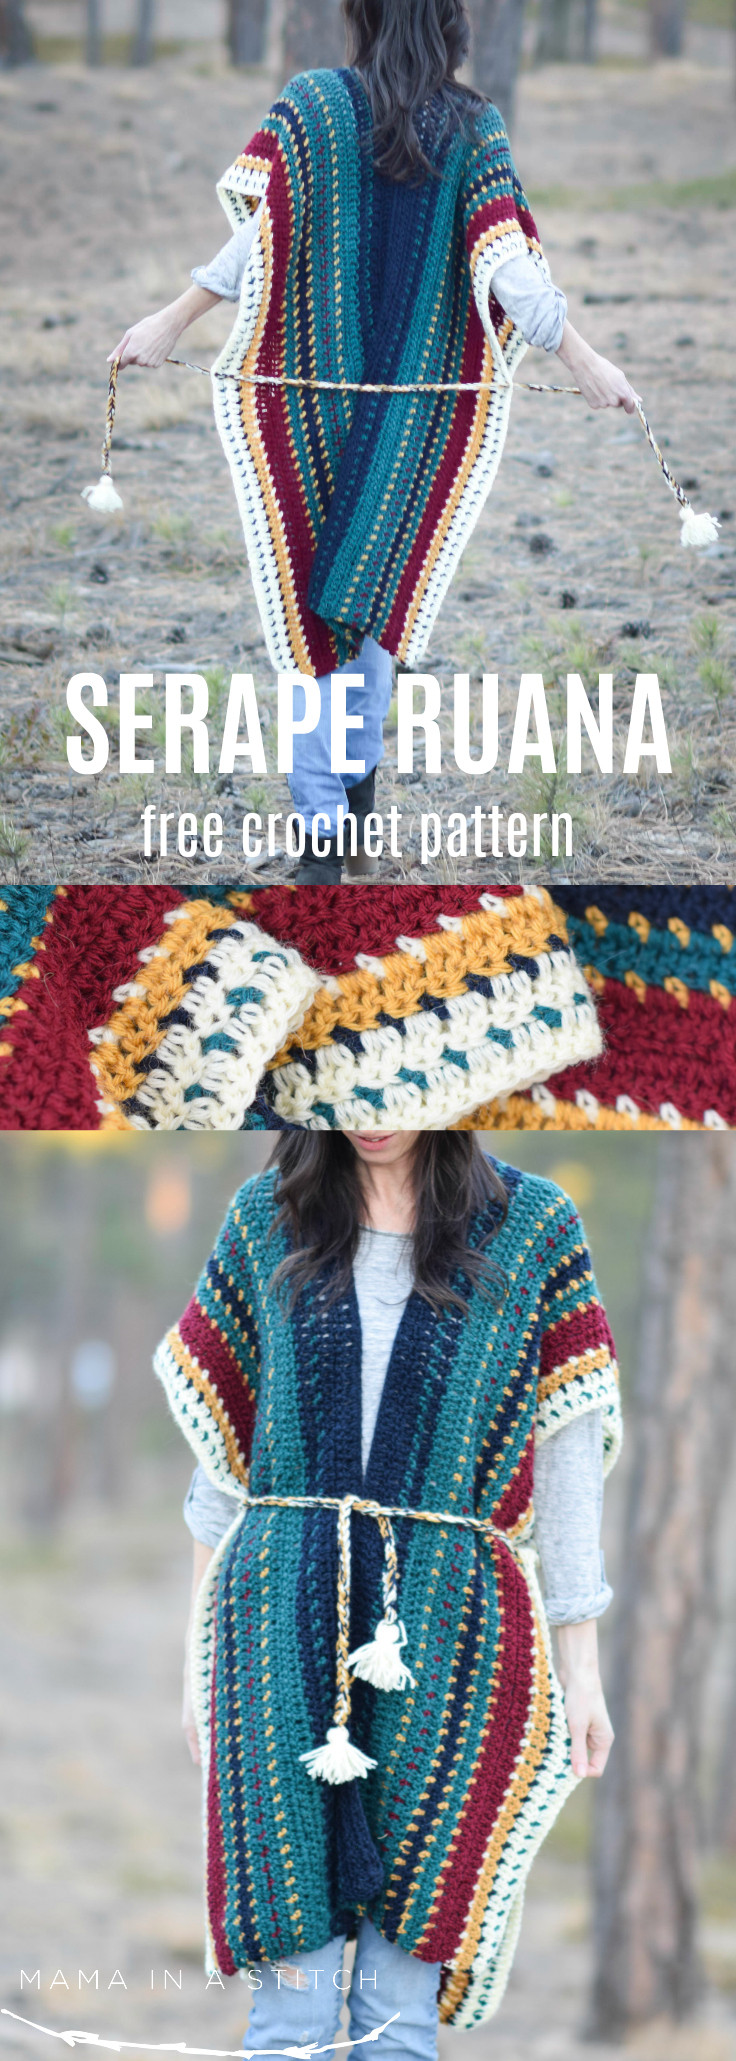 Best Of All the Colors Serape Crocheted Ruana Pattern – Mama In A Free Crochet Ruana Pattern Of Amazing 46 Ideas Free Crochet Ruana Pattern